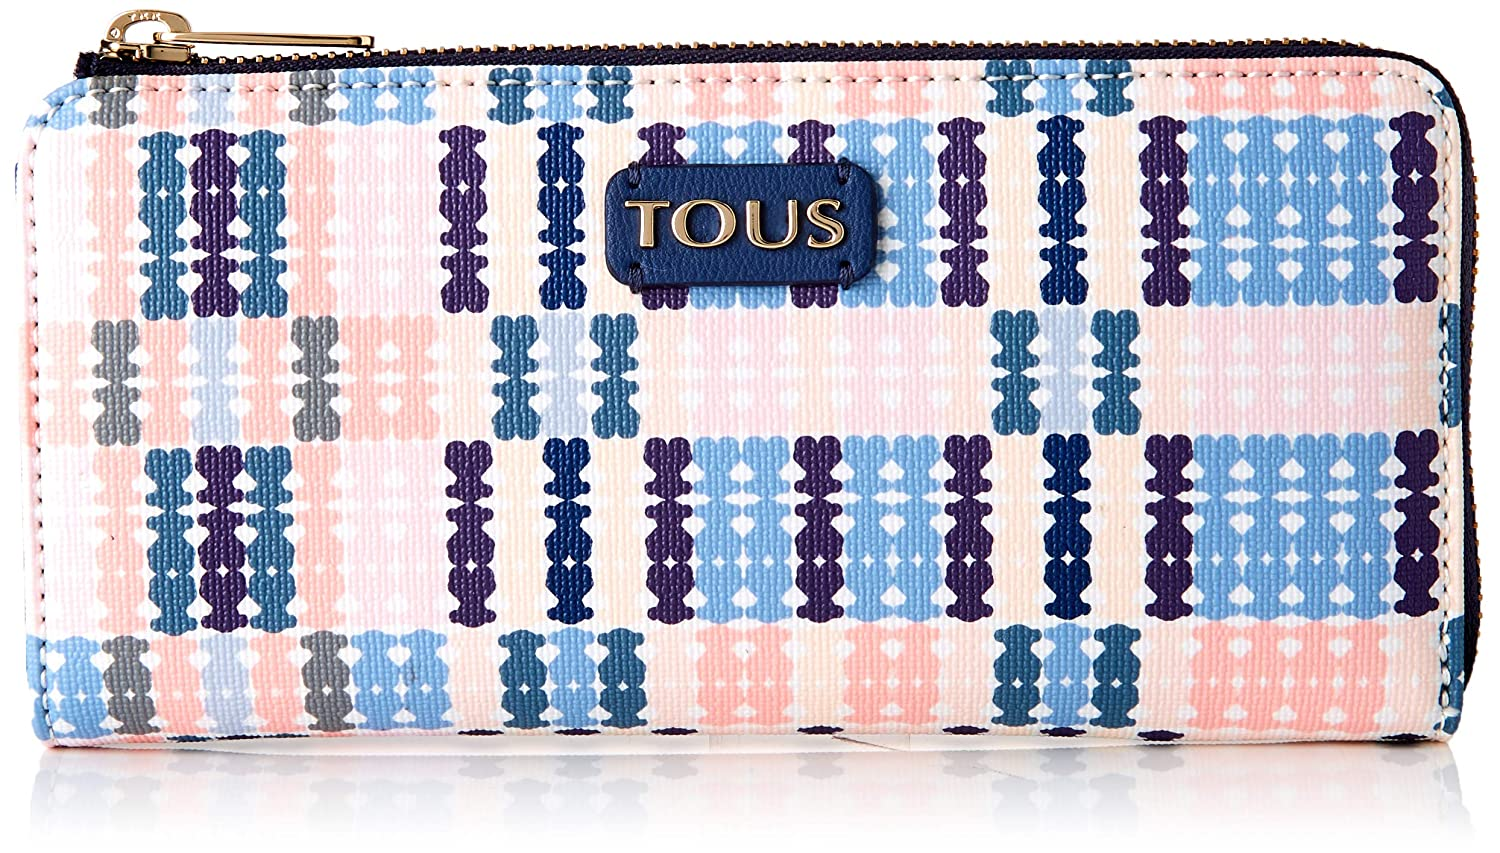 Amazon.com: Tous 995790084 - Cartera para mujer, color azul ...